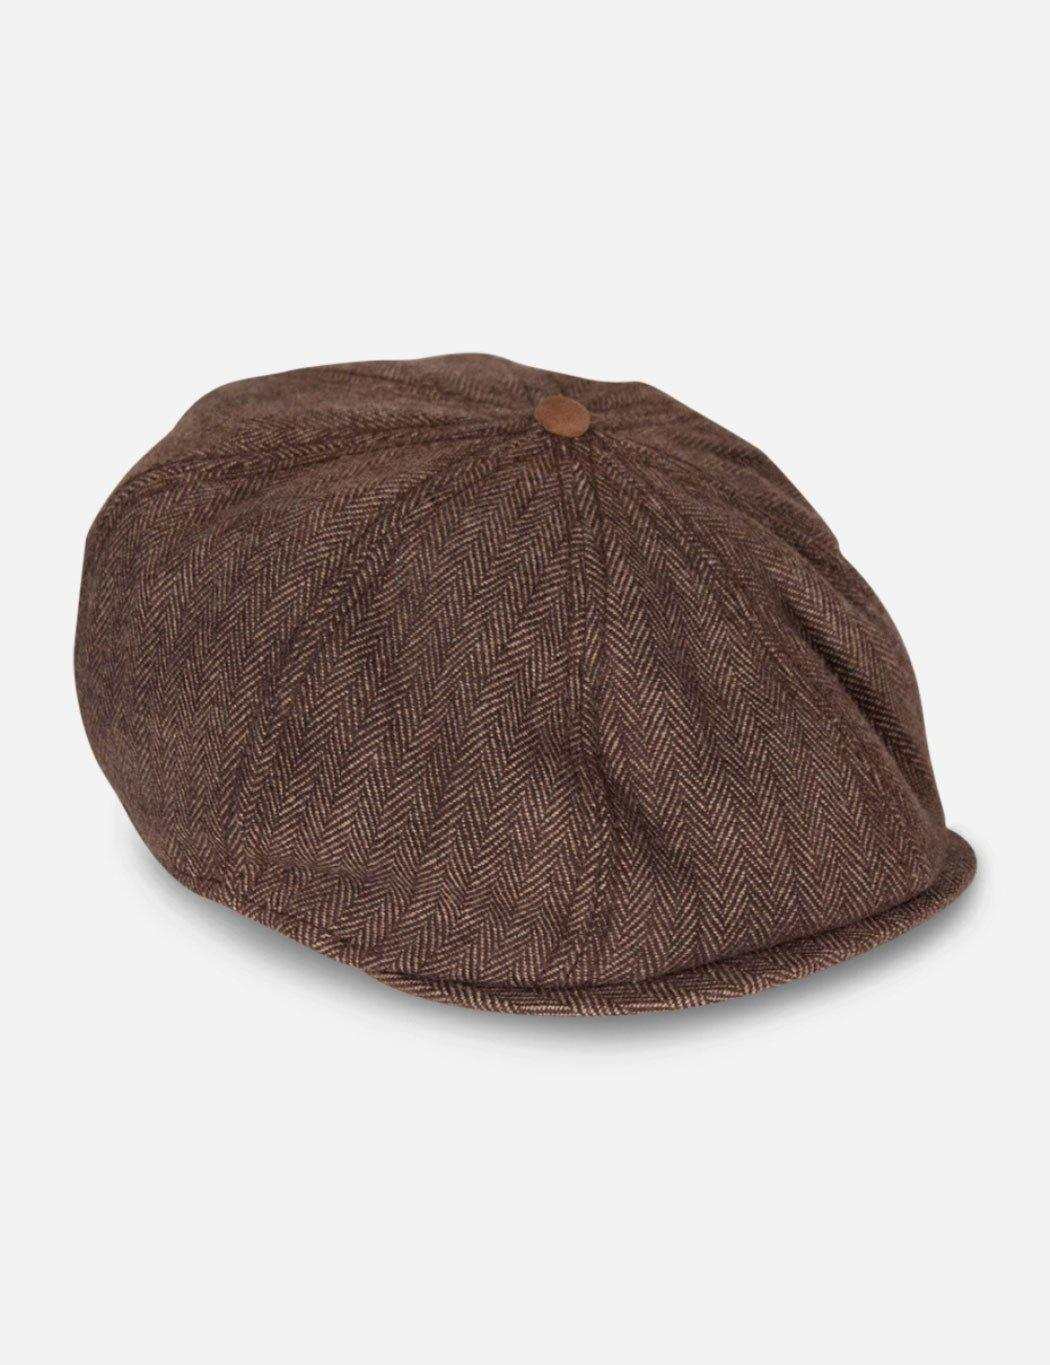 Lyst - Goorin Bros The Times Newsboy Cap in Brown for Men 6a4a27f52ed